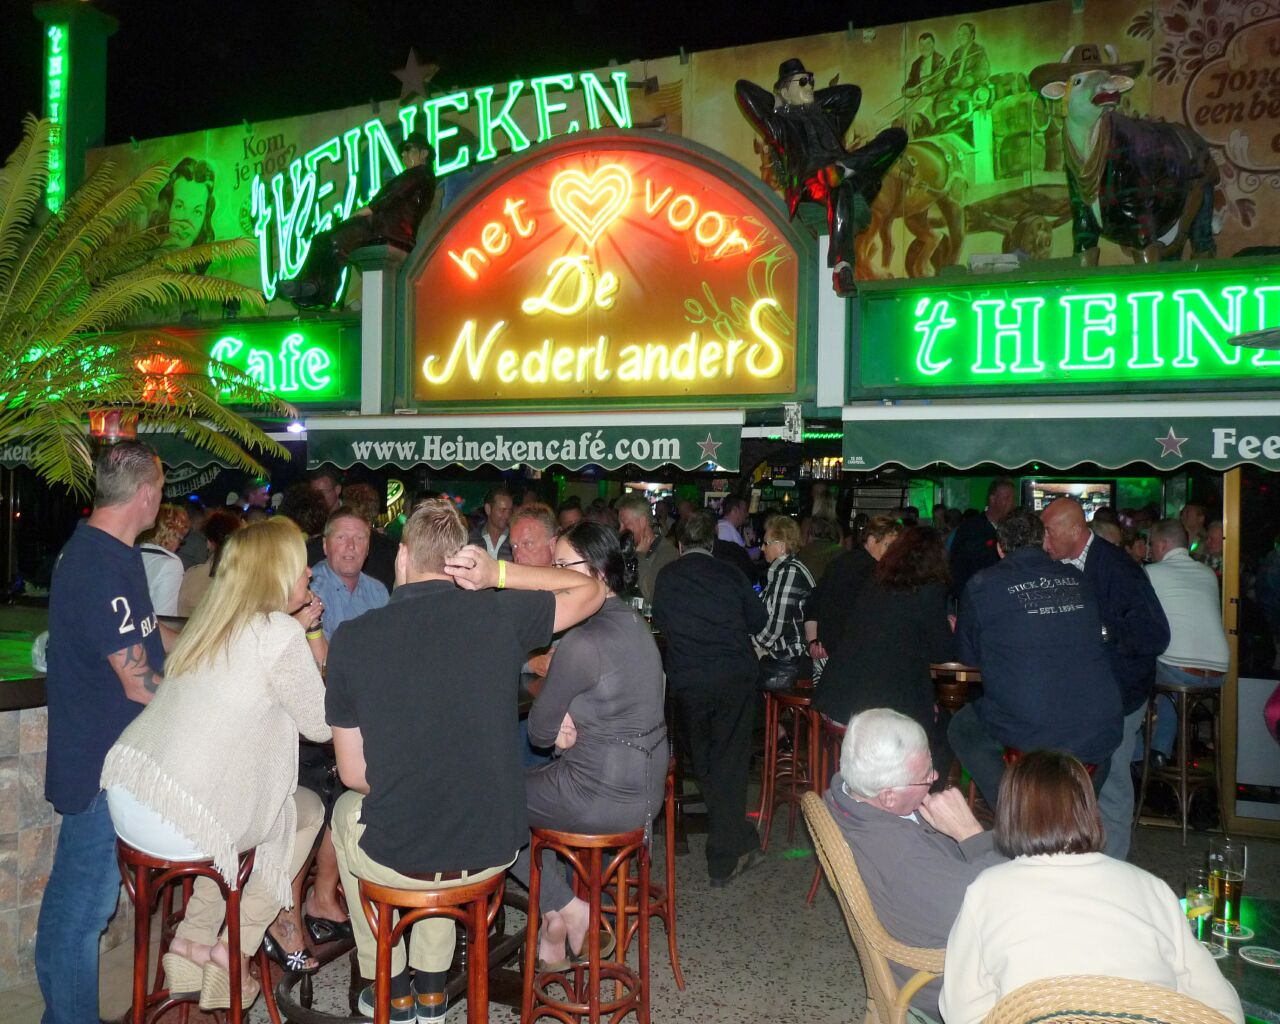 Going to English pubs and Dutch bars in Gran Chaparral on Playa del Ingles